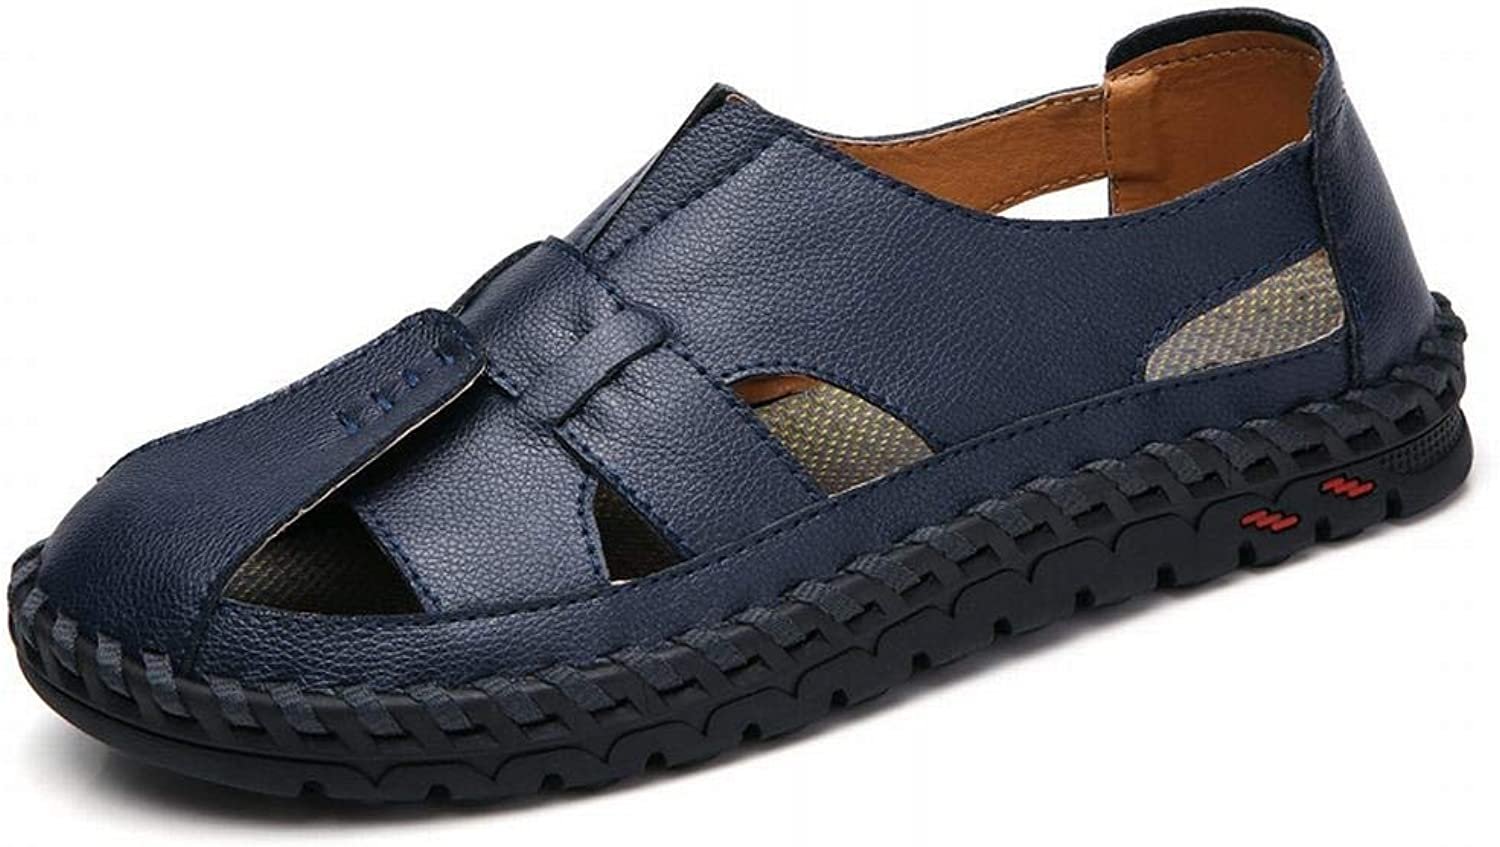 Men's shoes Outdoor Non-Slip Leather Men's Sandals Beach shoes (color   Dark bluee, Size   40)